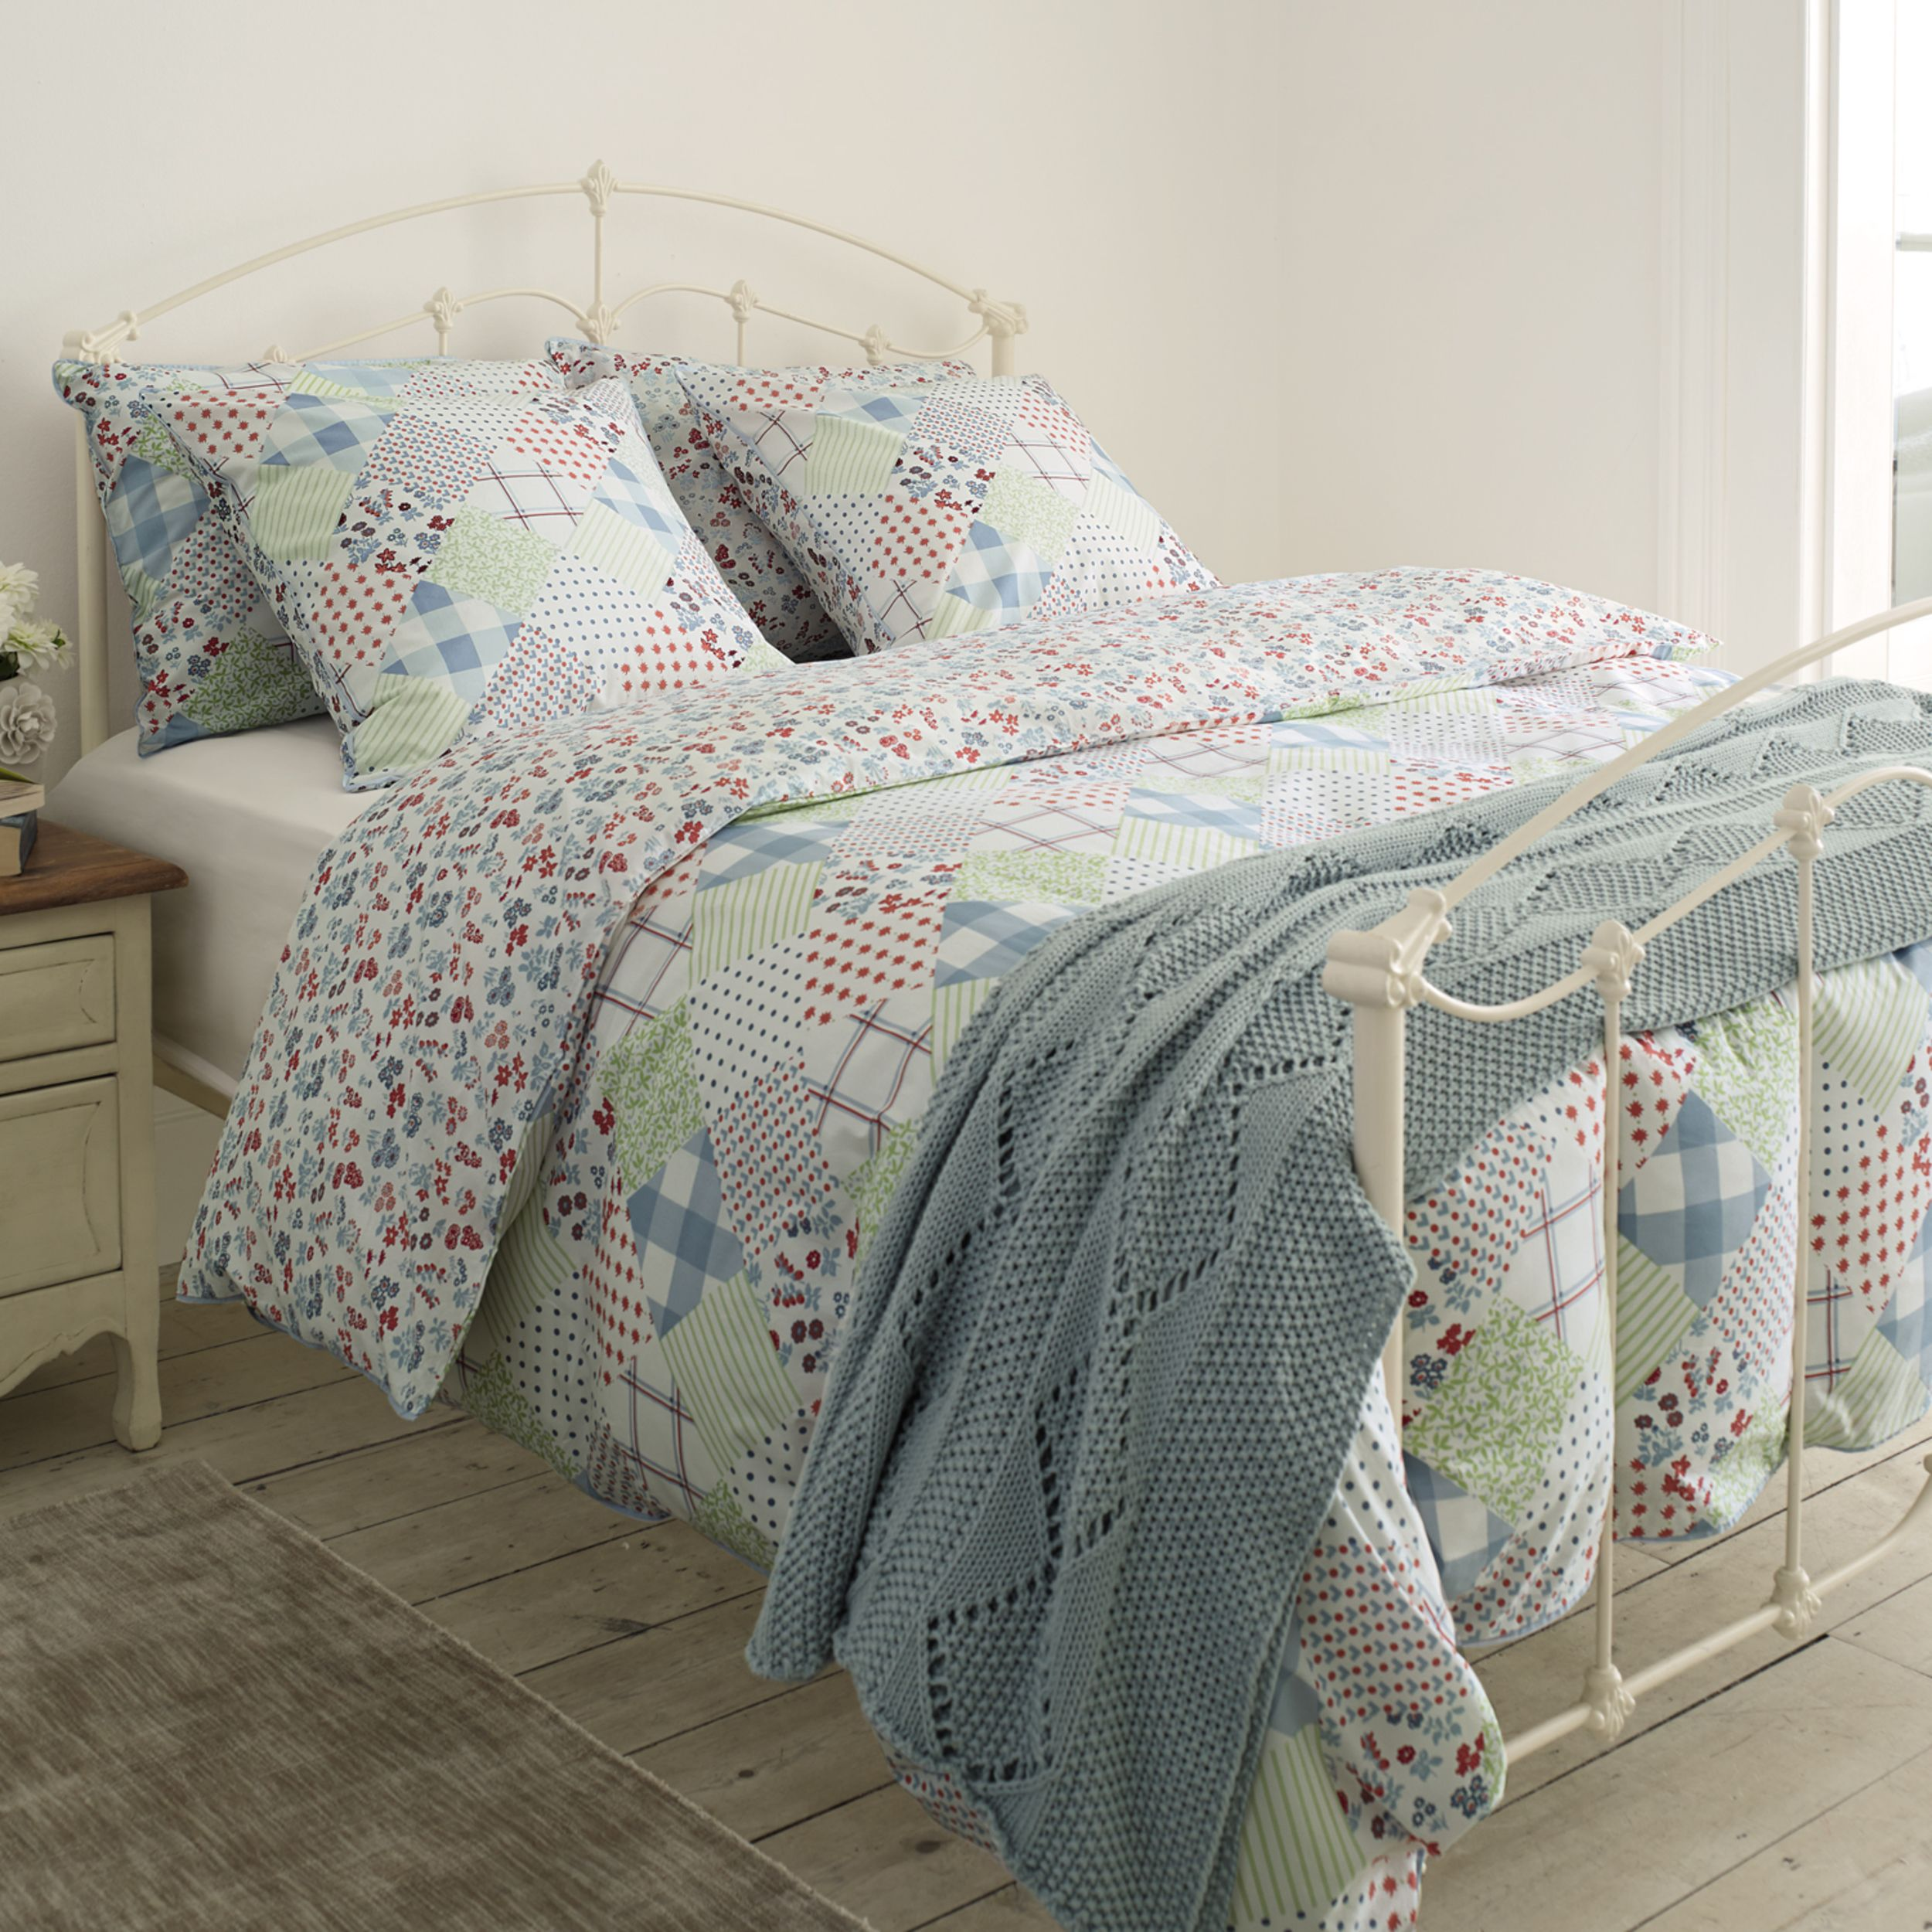 Country Patchwork Bed, Bed images, Childrens room decor